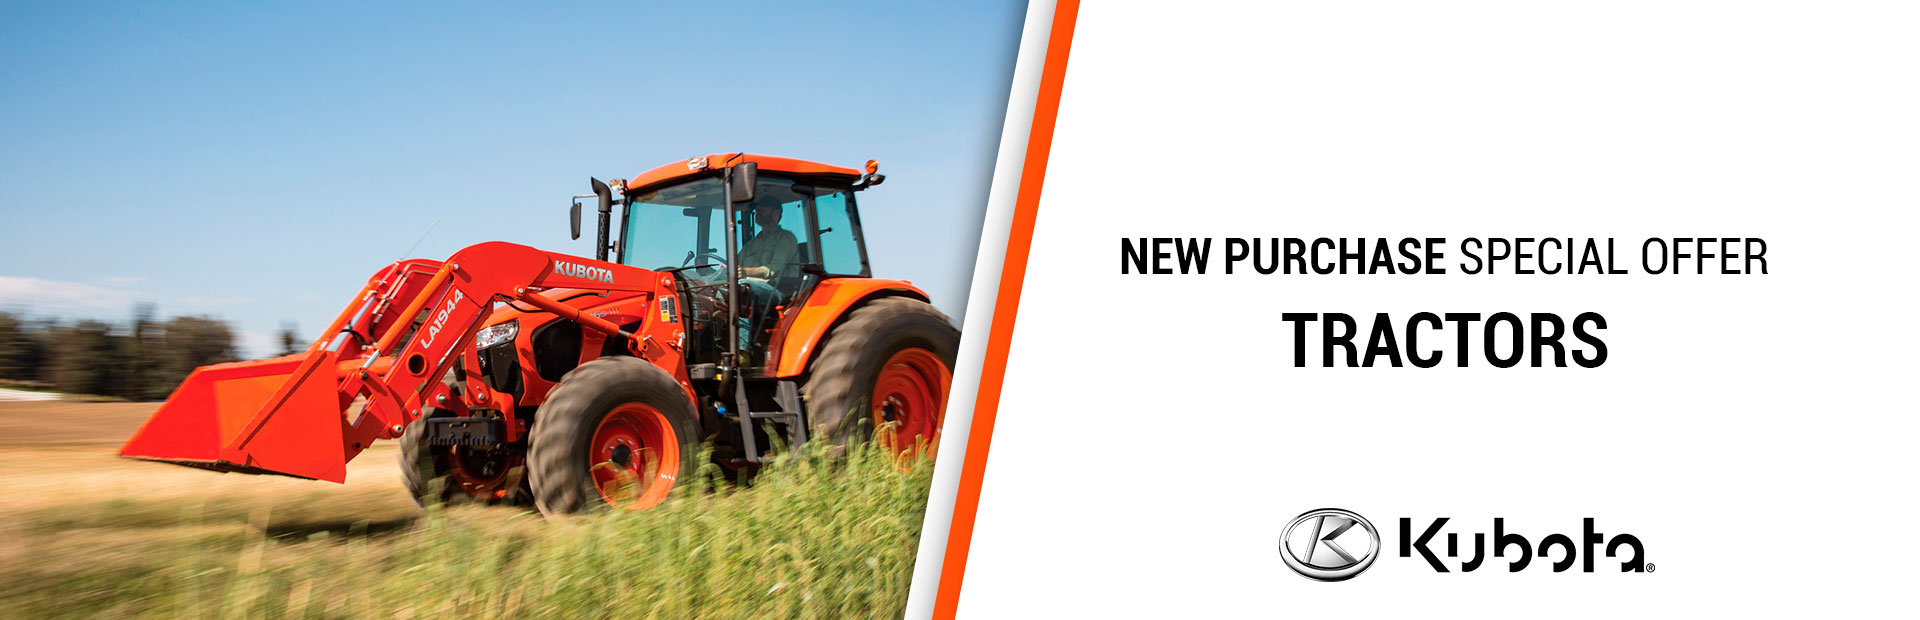 Kubota: New Purchase Special Offers - Tractors